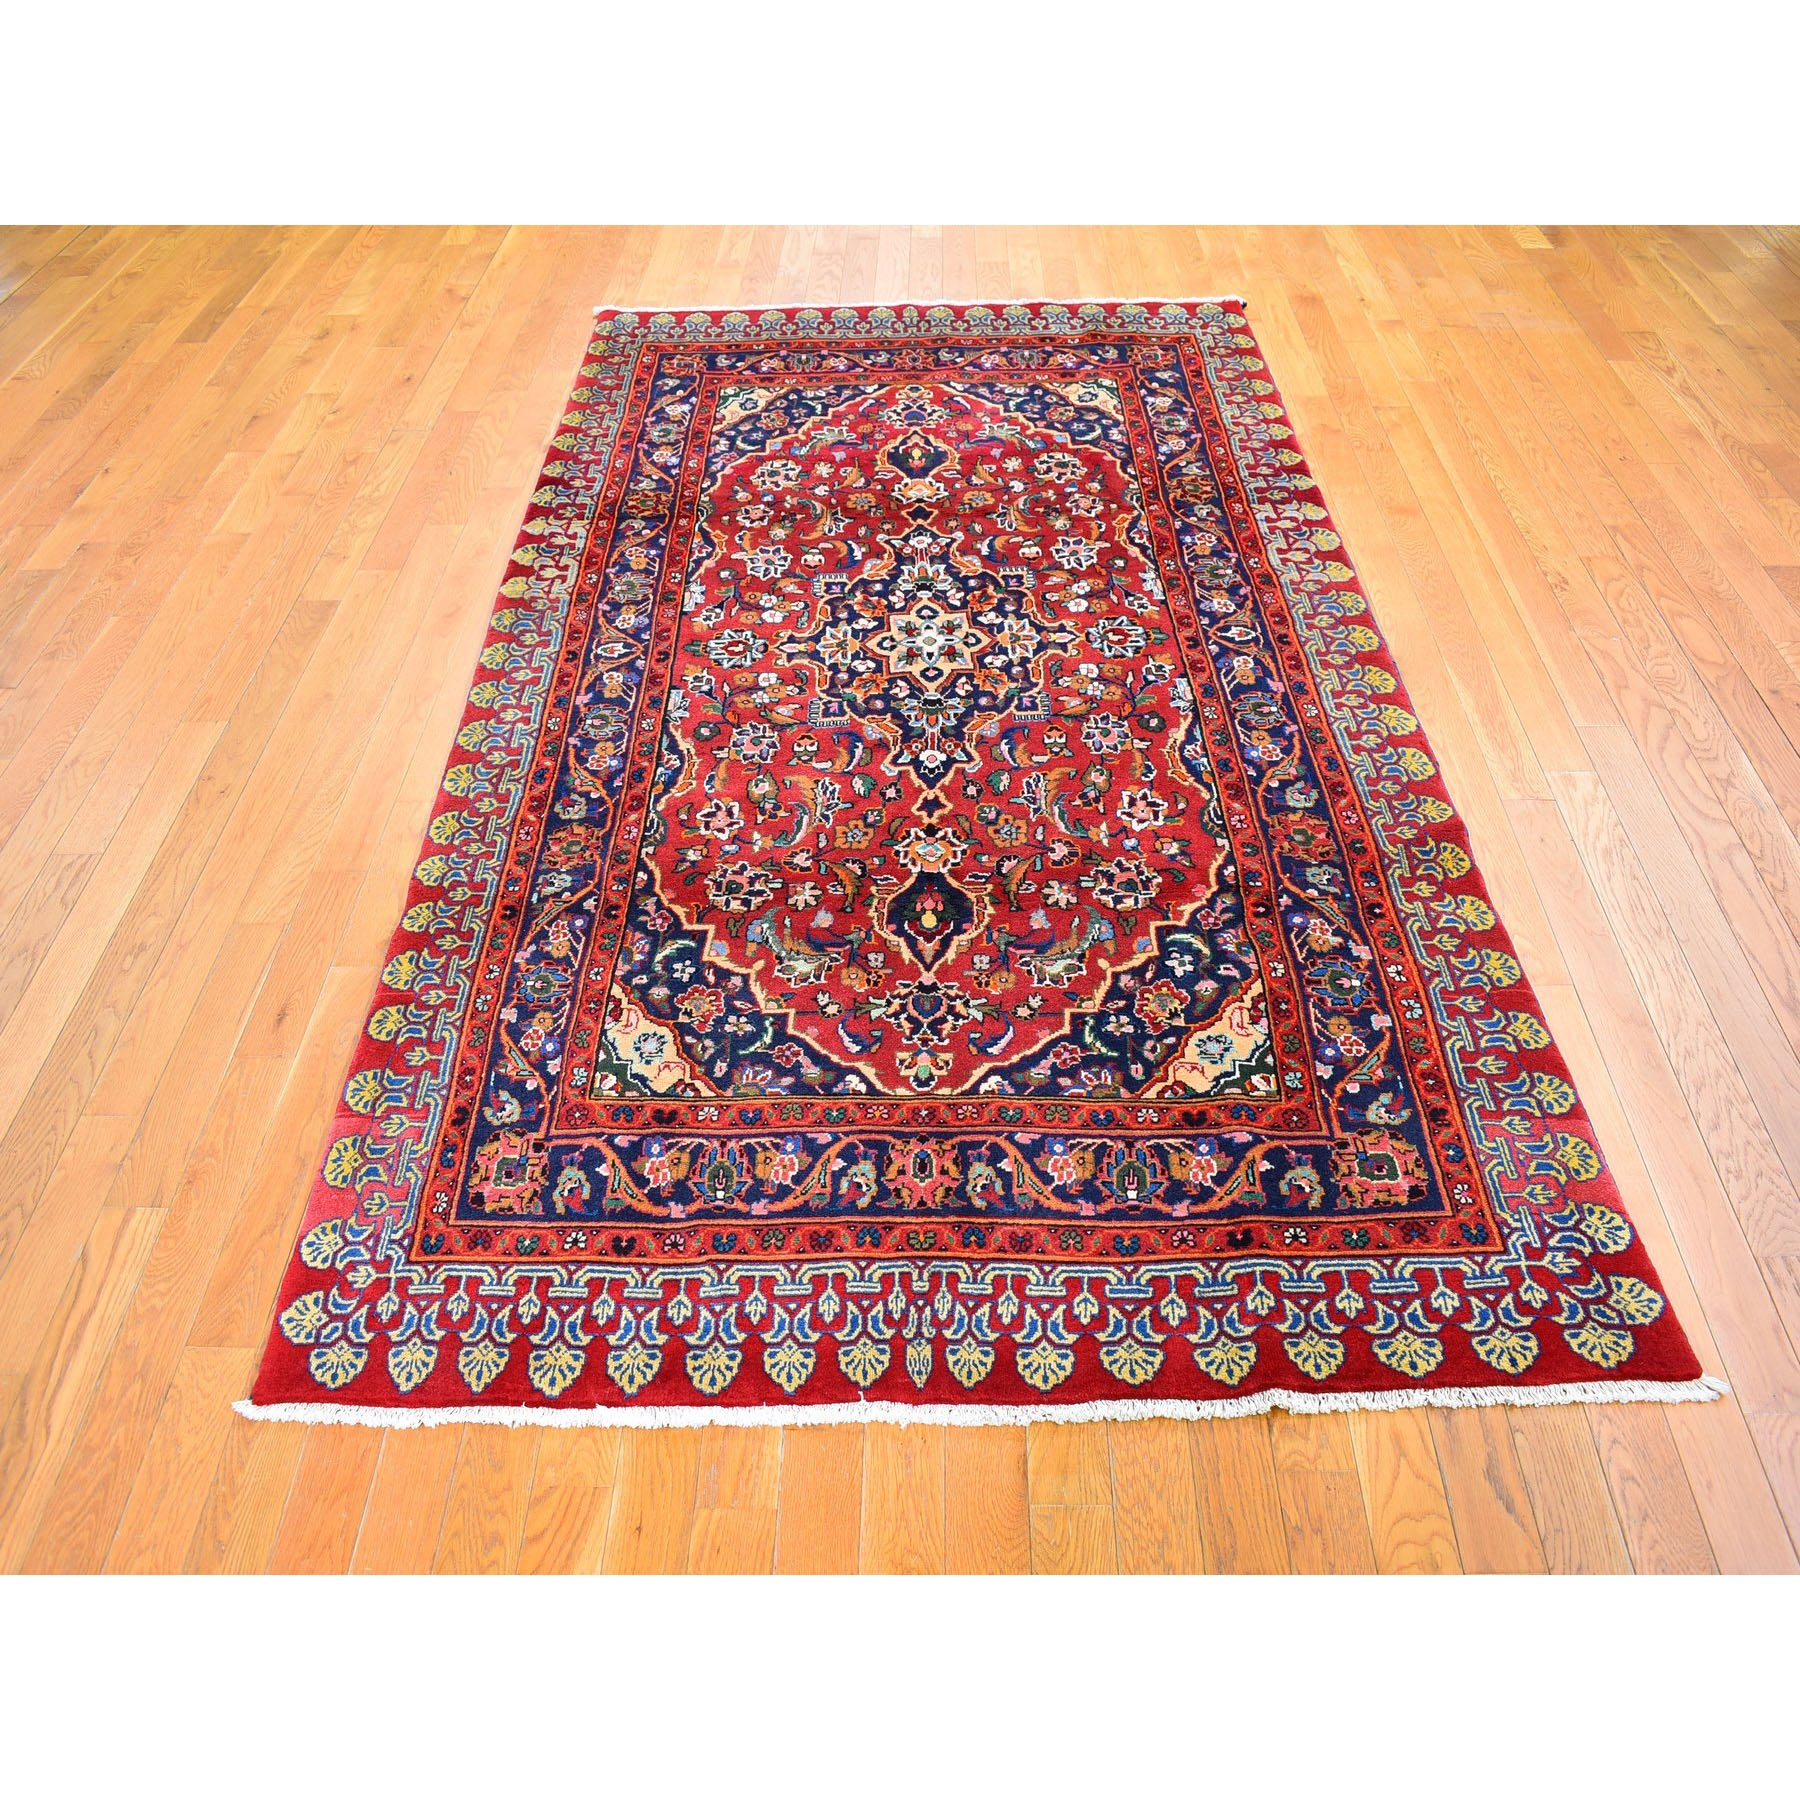 5'x9' Vintage Persian Kashan Dense Weave Wide and Long Red Pure Wool Hand Knotted Oriental Rug